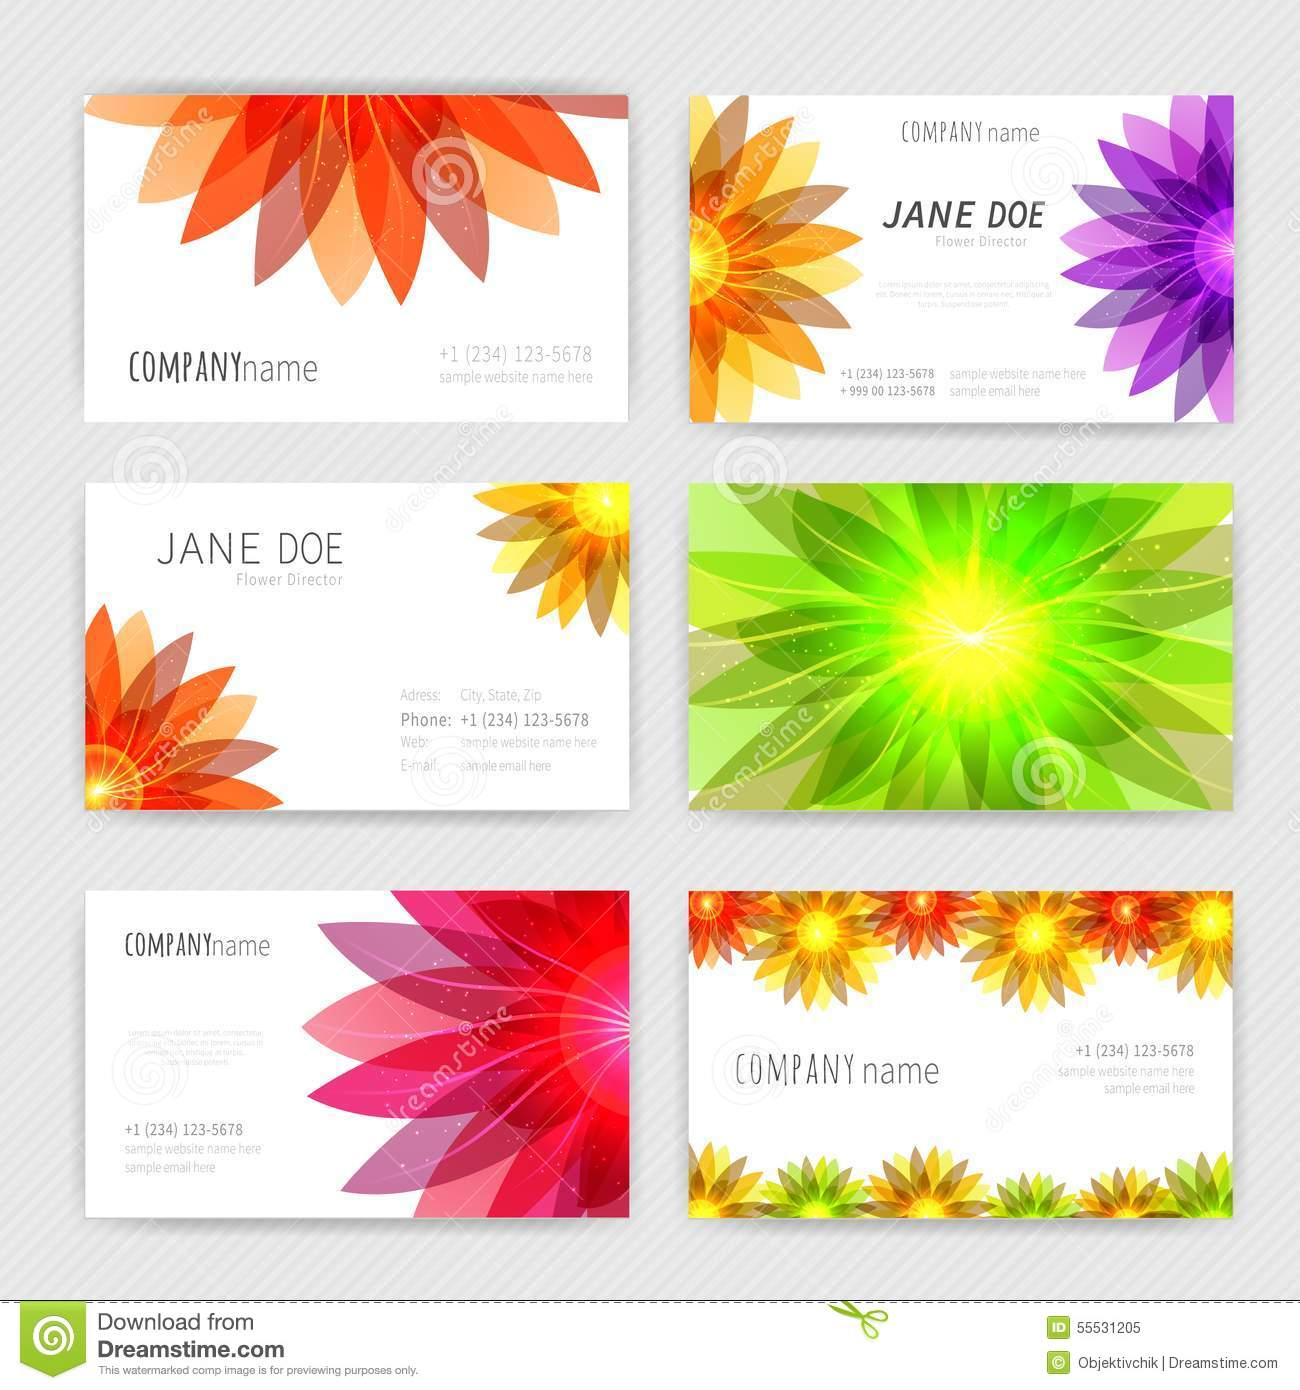 Flower business cards set stock vector. Image of decoration - 55531205